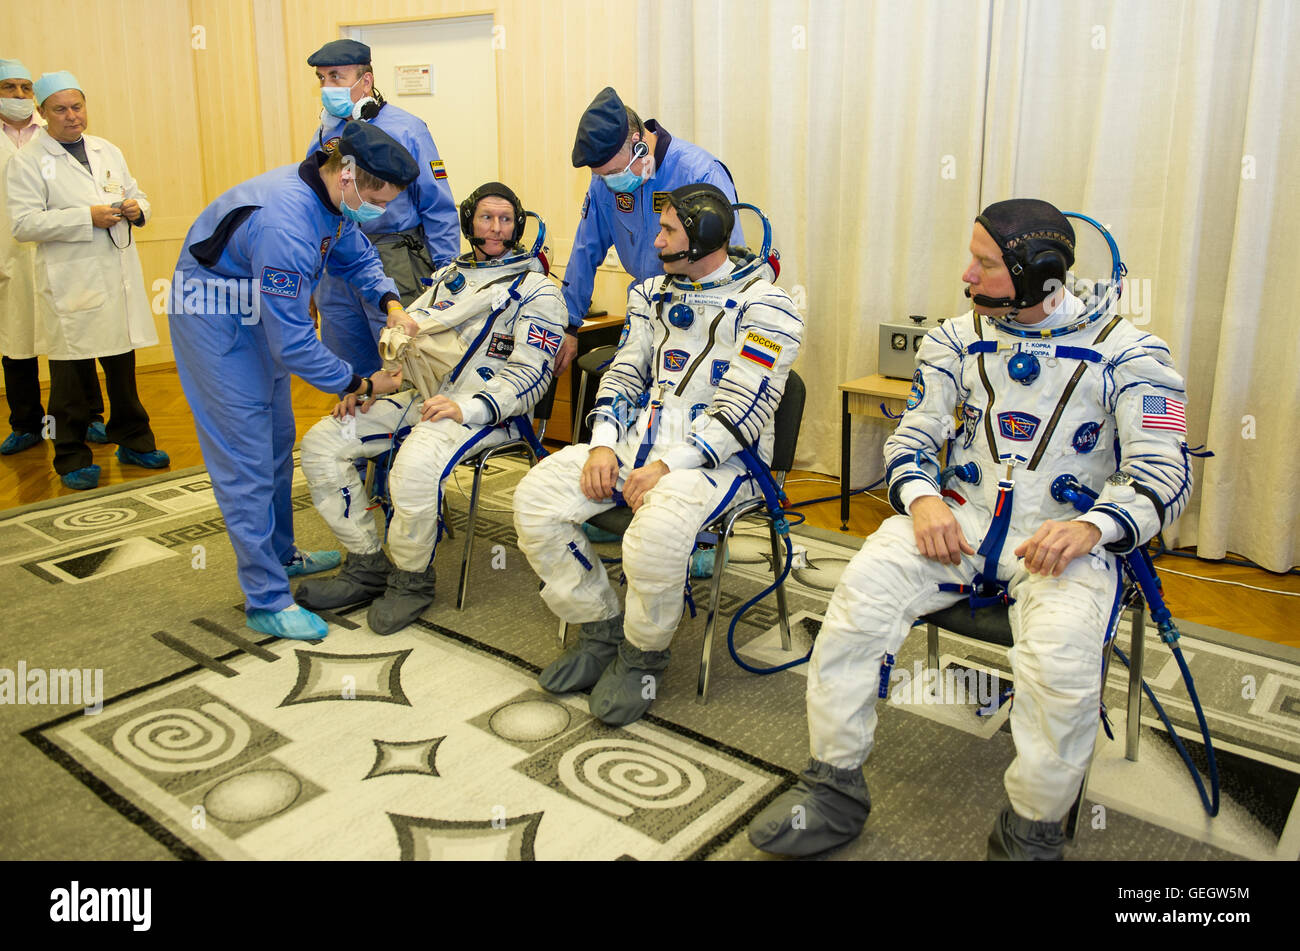 Expedition 46 Preflight  12150058 - Stock Image